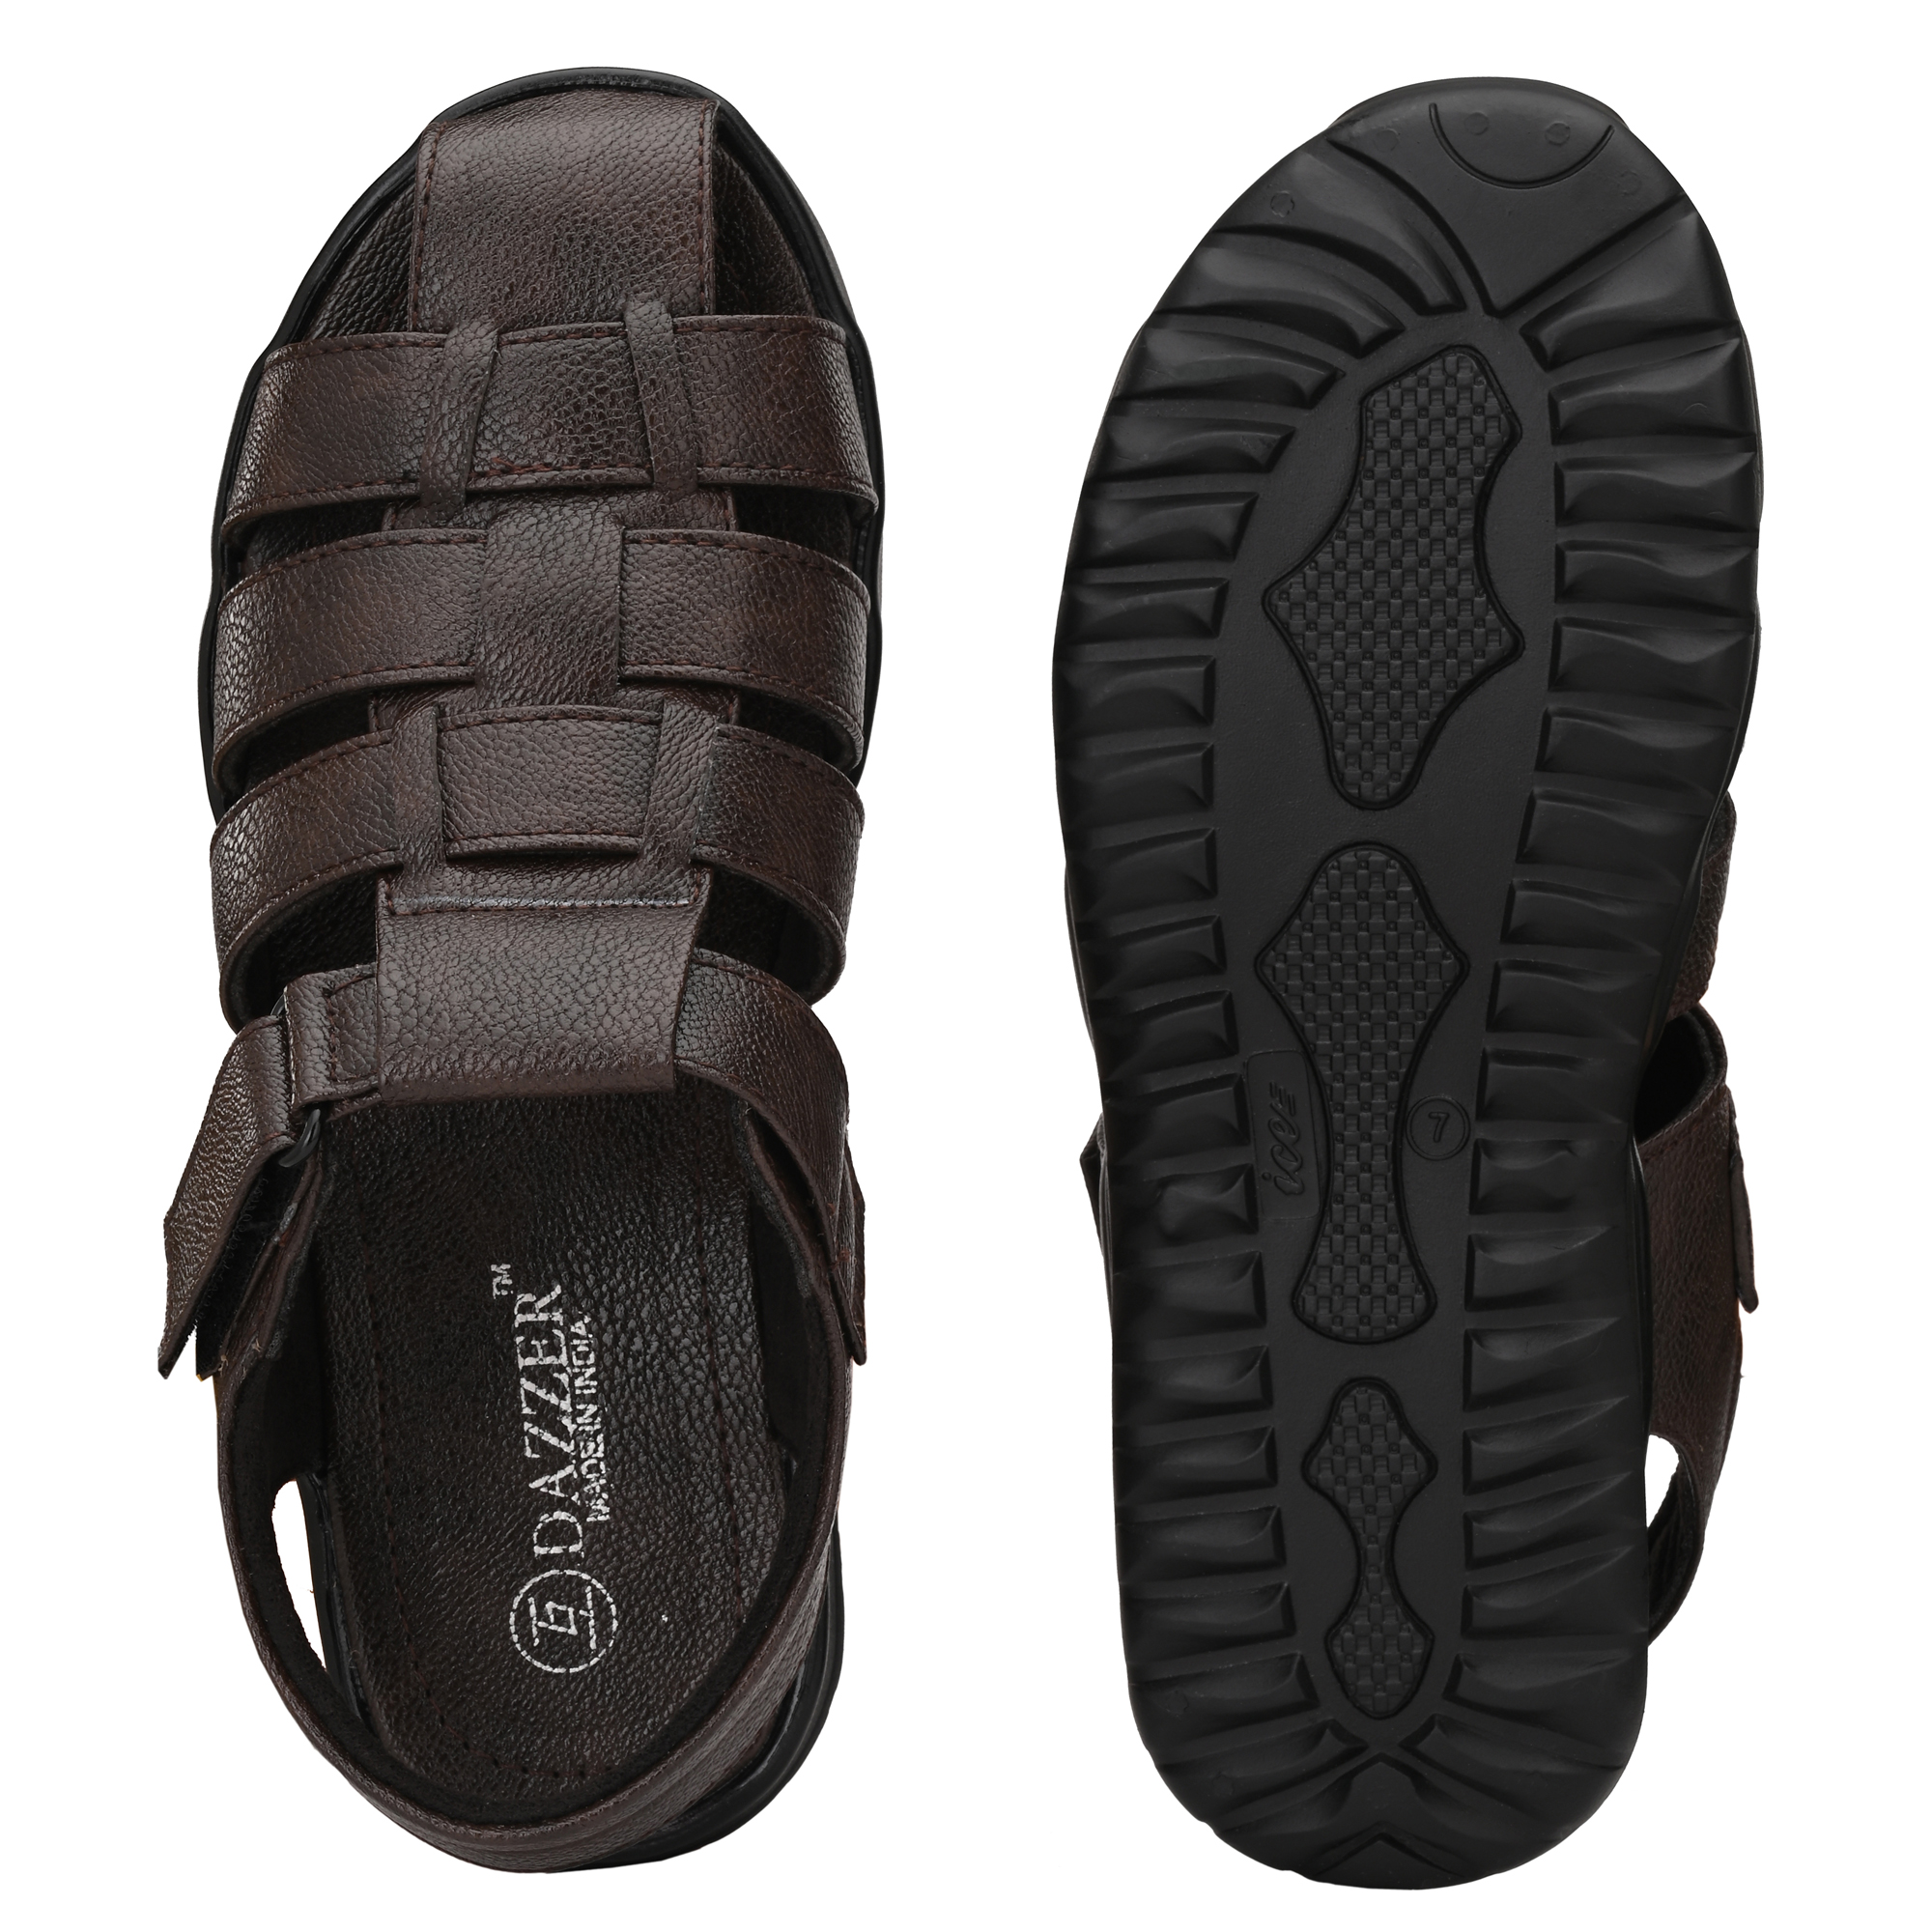 Dazzer 602 Velcro Synthetic Sandals For Men 602Brown (Brown, 6-10, 8 PAIR)